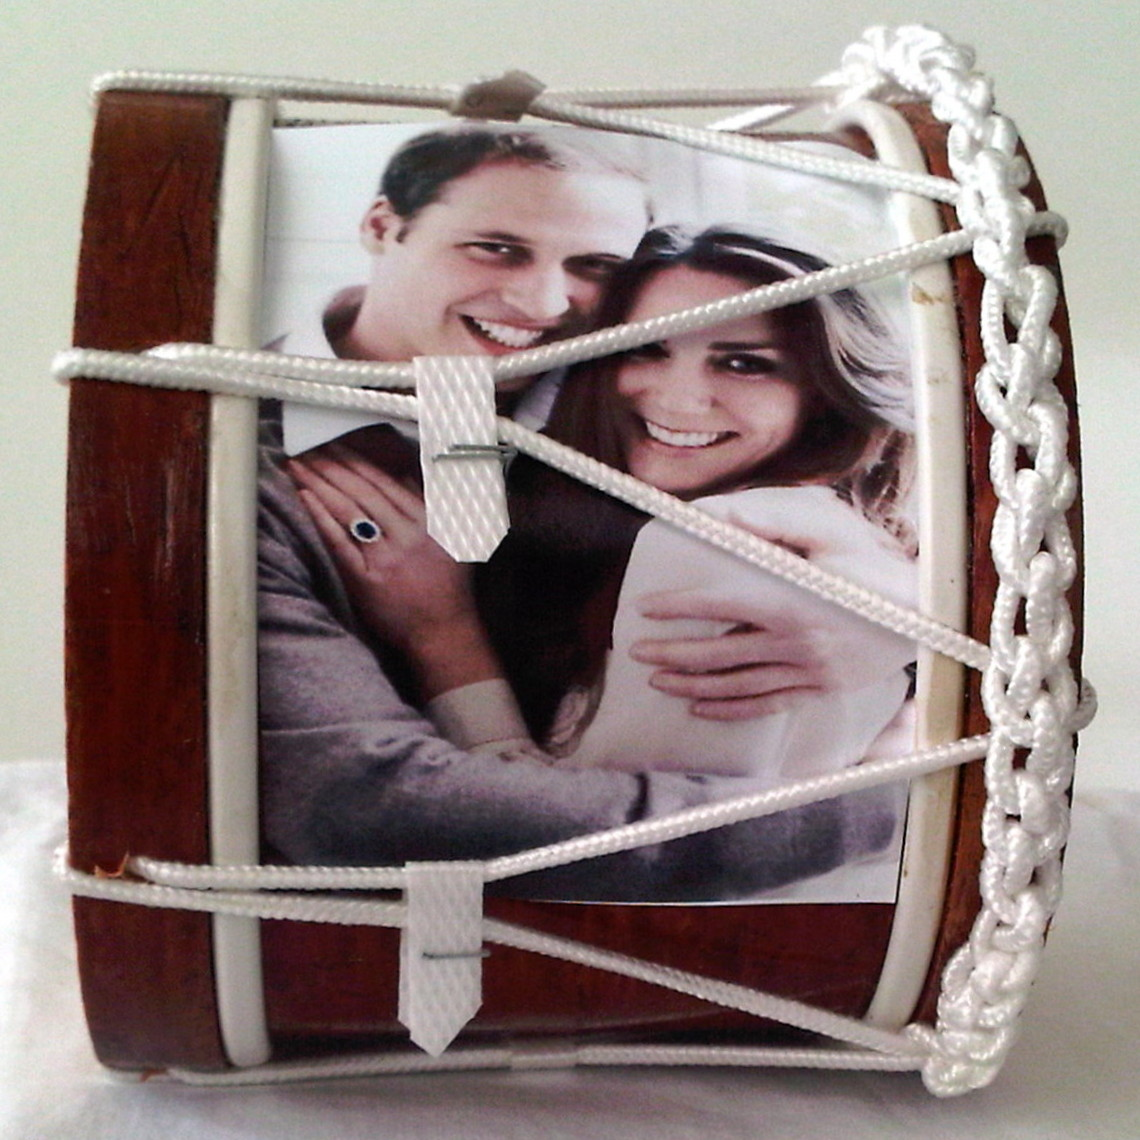 Royal Wedding Souvenir Mini Lambeg Drum ( Casual Image )